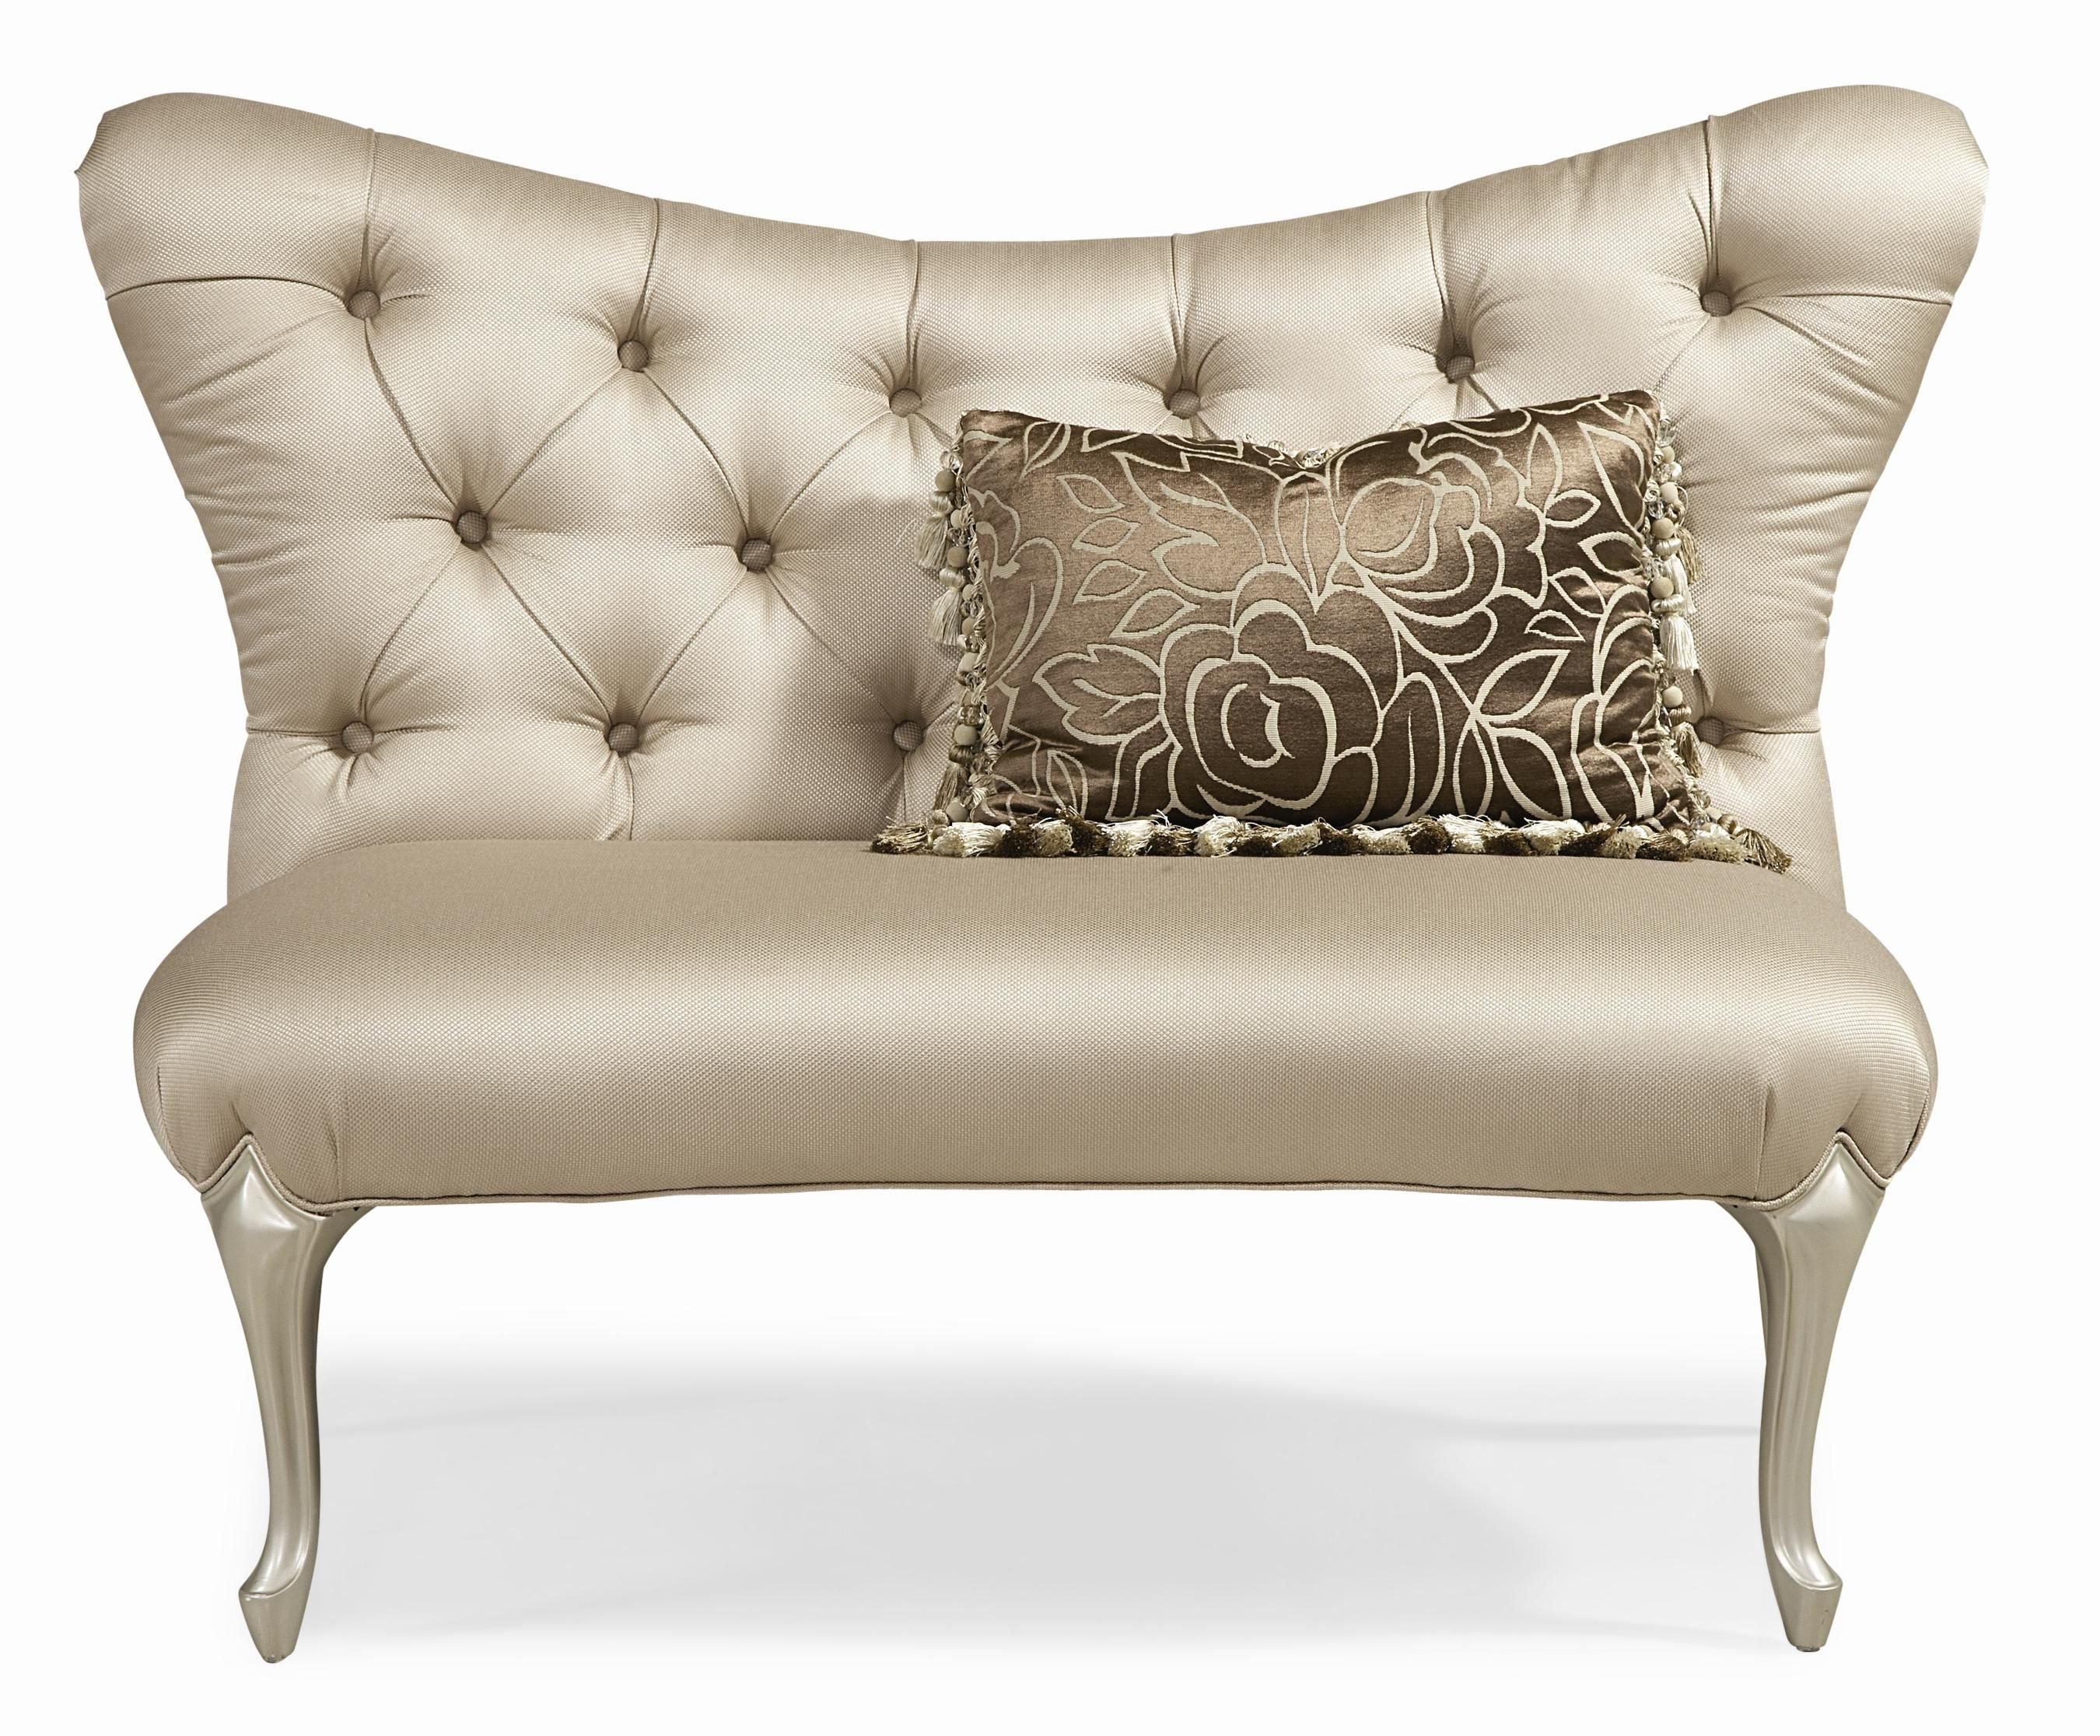 Caracole Upholstery Bewitched Upholstered Settee by